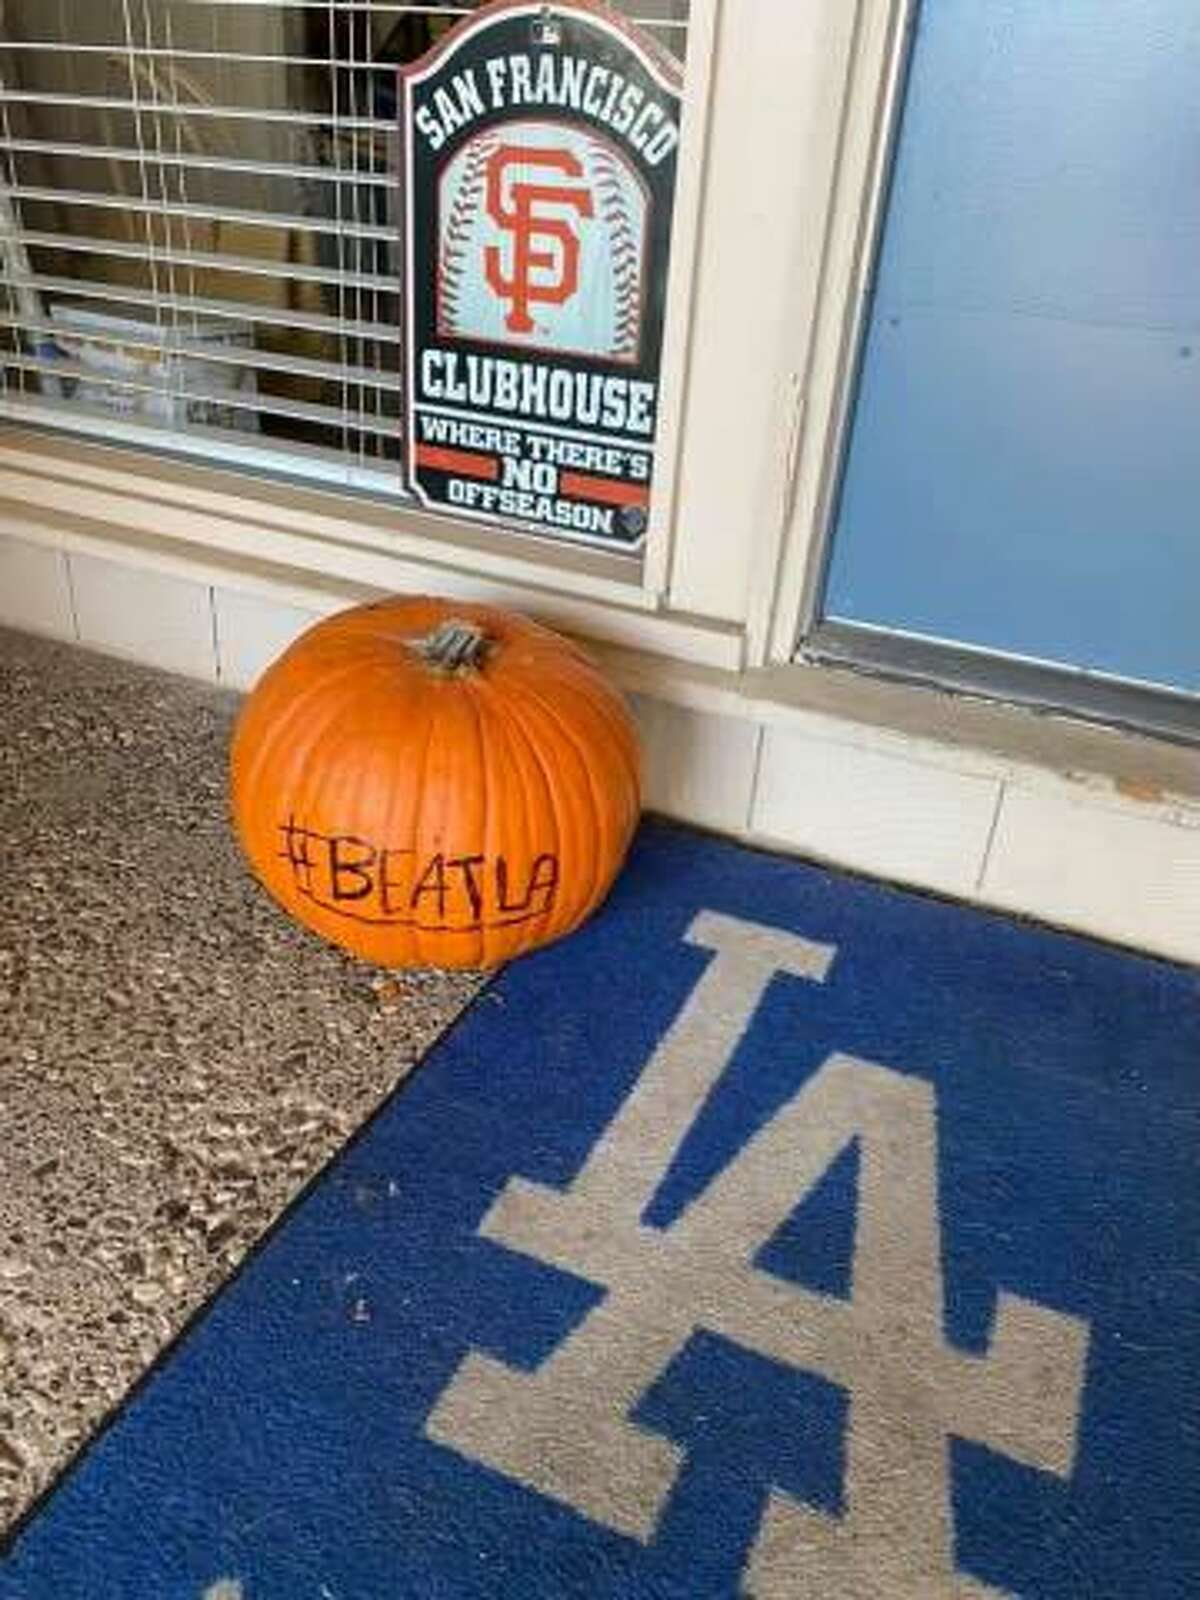 The doormat and pumpkin outside the Carmichael home of Carol Dahmen-Eckery and Kevin Eckery. Carol is a San Francisco Giants fan and Kevin a Los Angeles Dodgers fan.